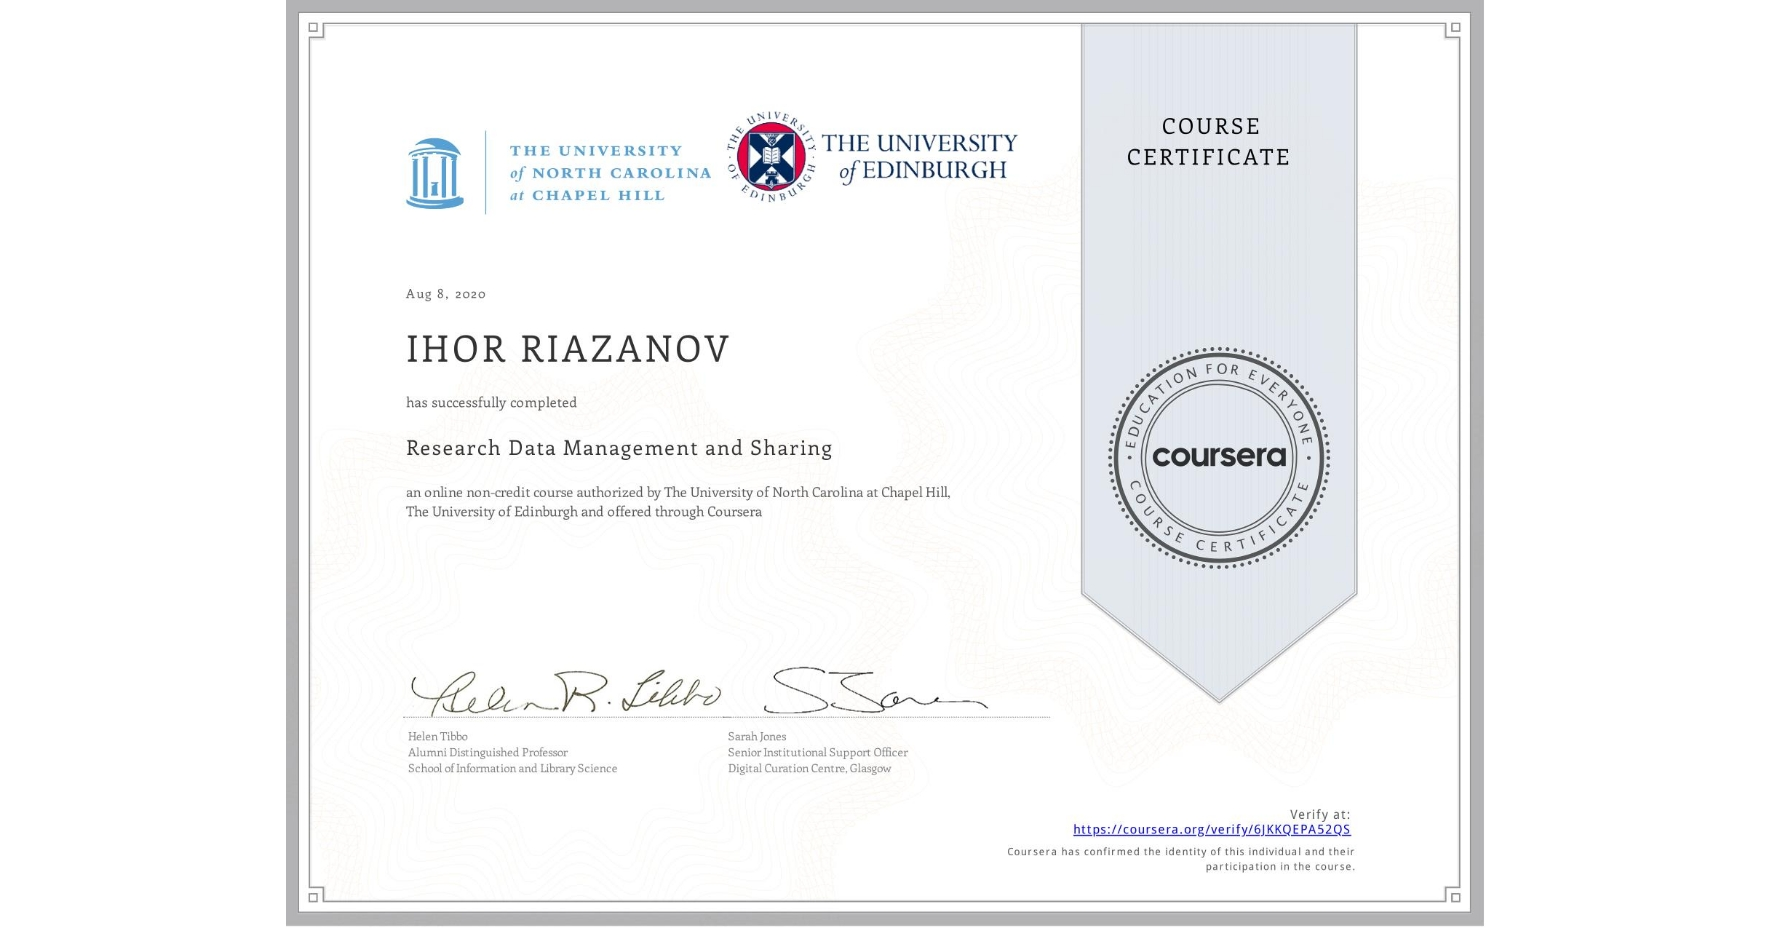 View certificate for IHOR RIAZANOV, Research Data Management and Sharing, an online non-credit course authorized by The University of North Carolina at Chapel Hill & The University of Edinburgh and offered through Coursera